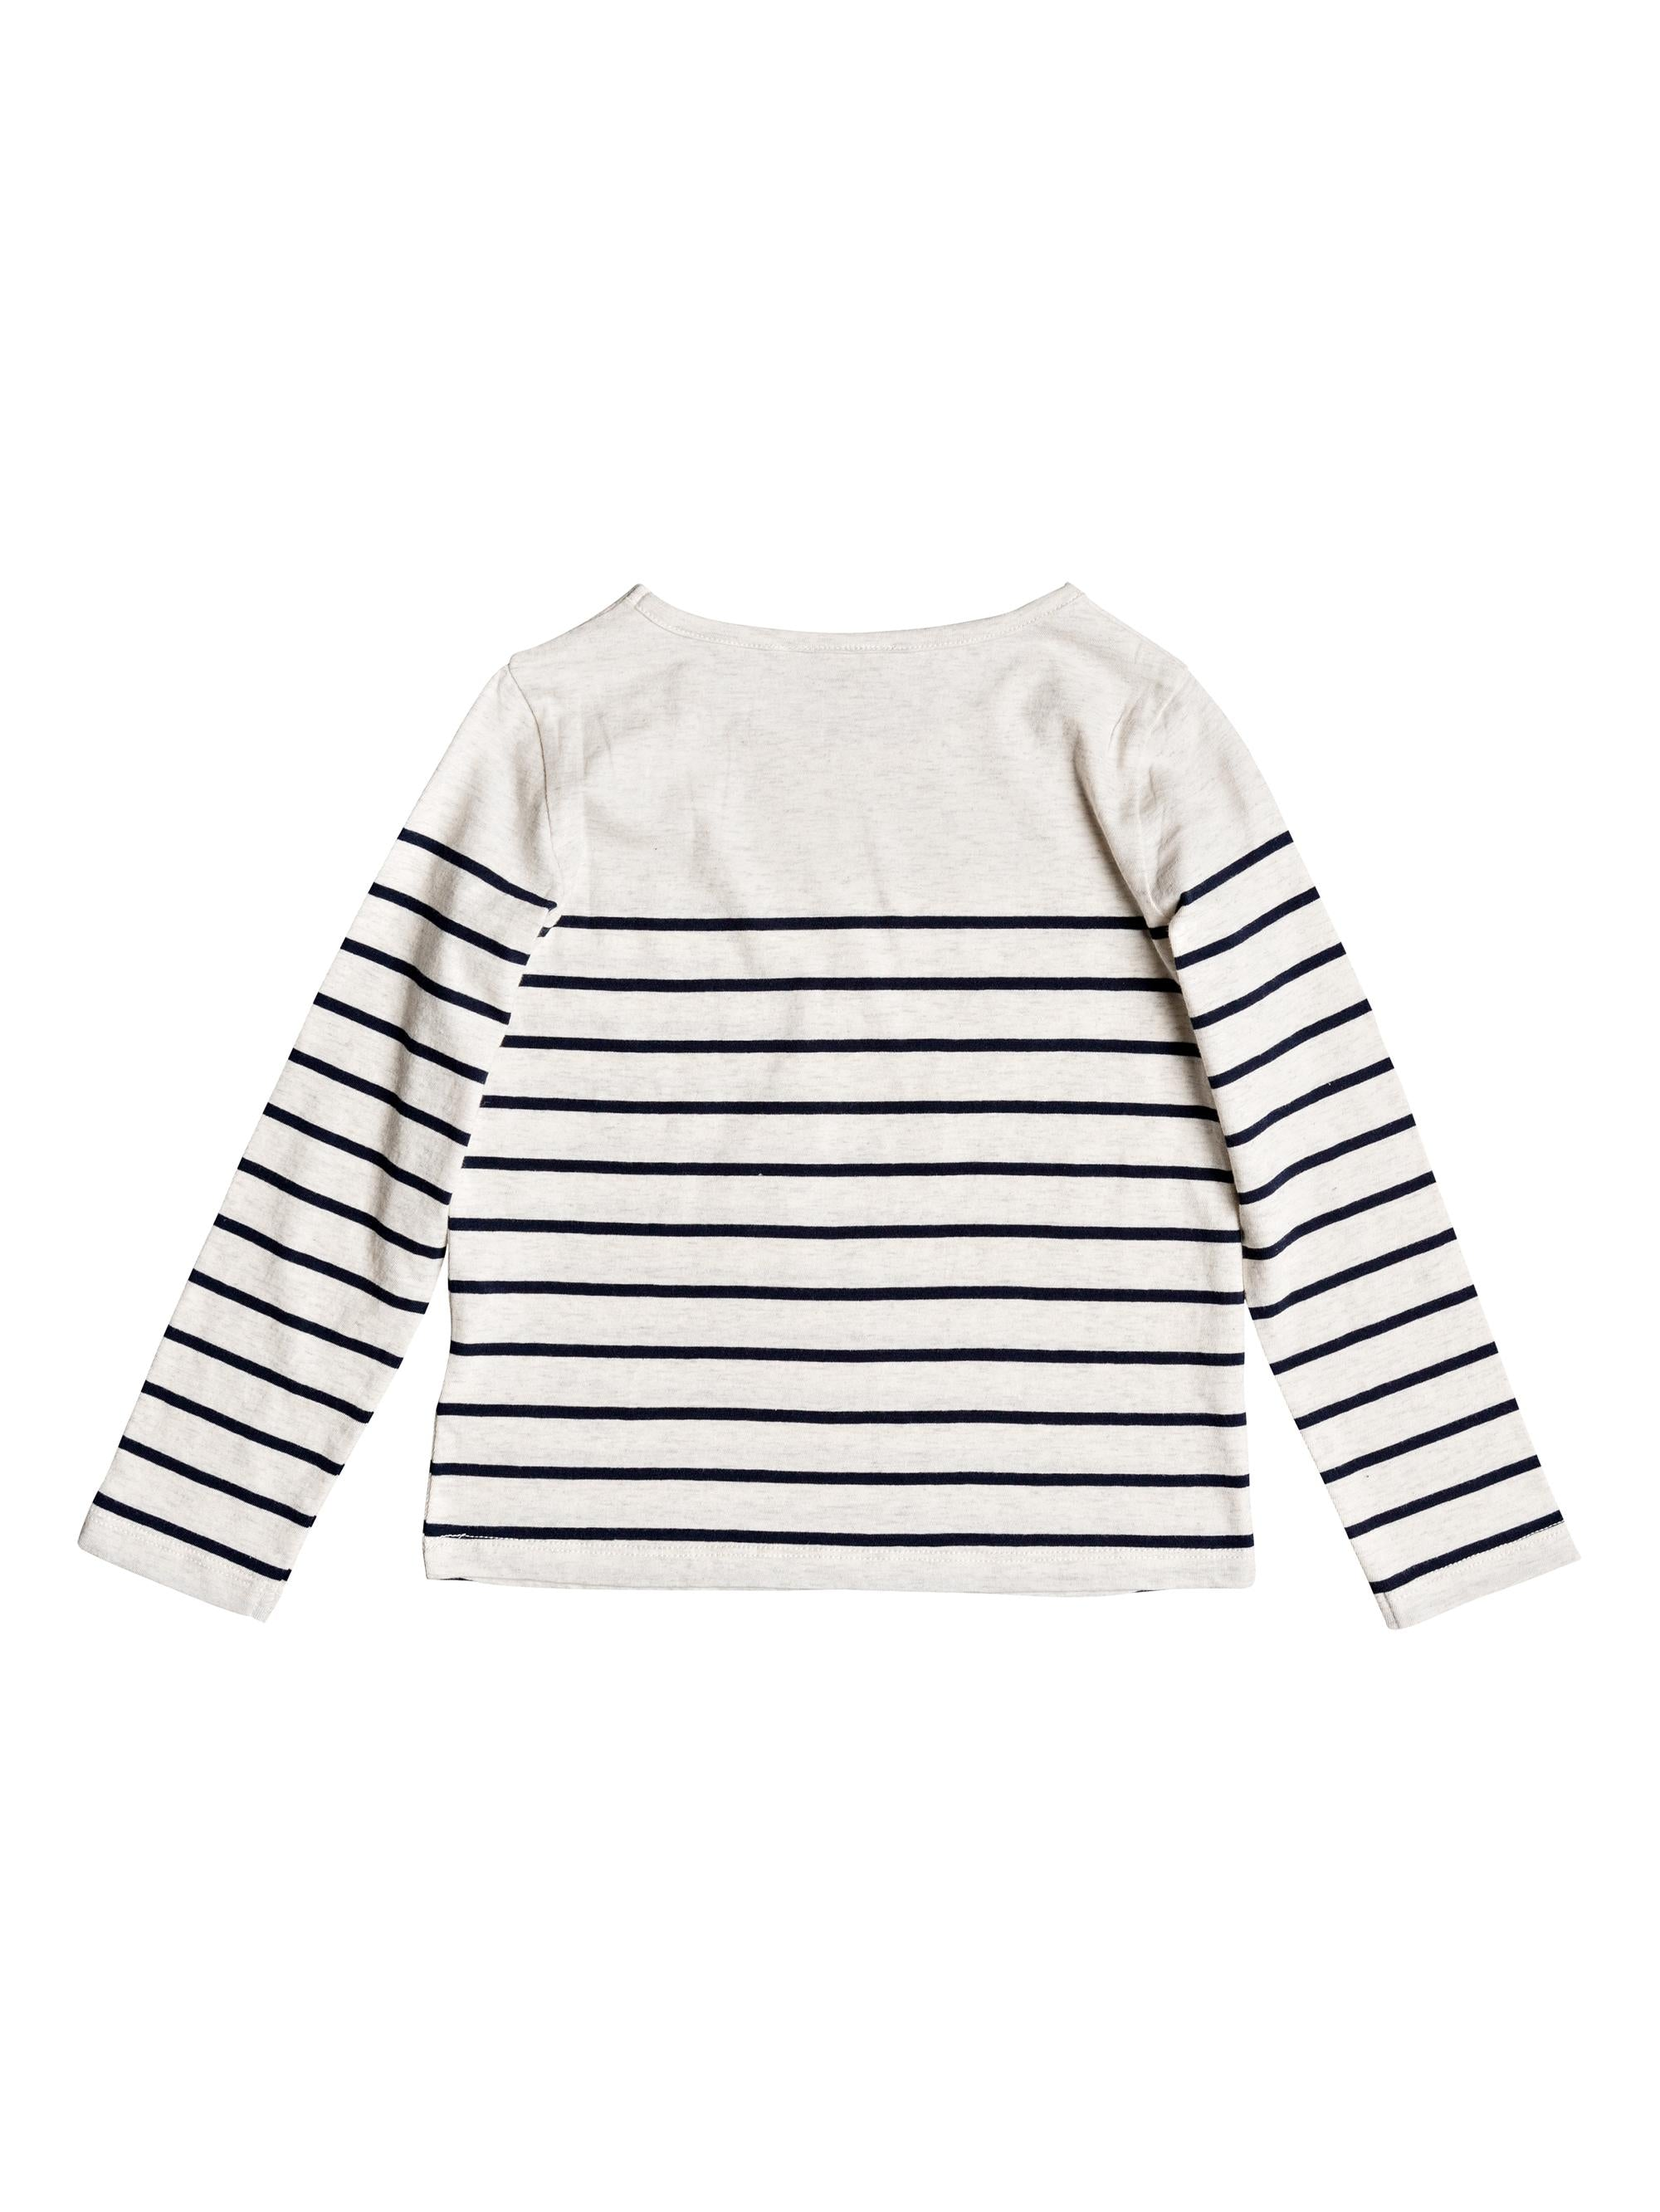 Roxy Girls Joy You Bring Long Sleeve Shirt in Dress Blue Nautic Stripe